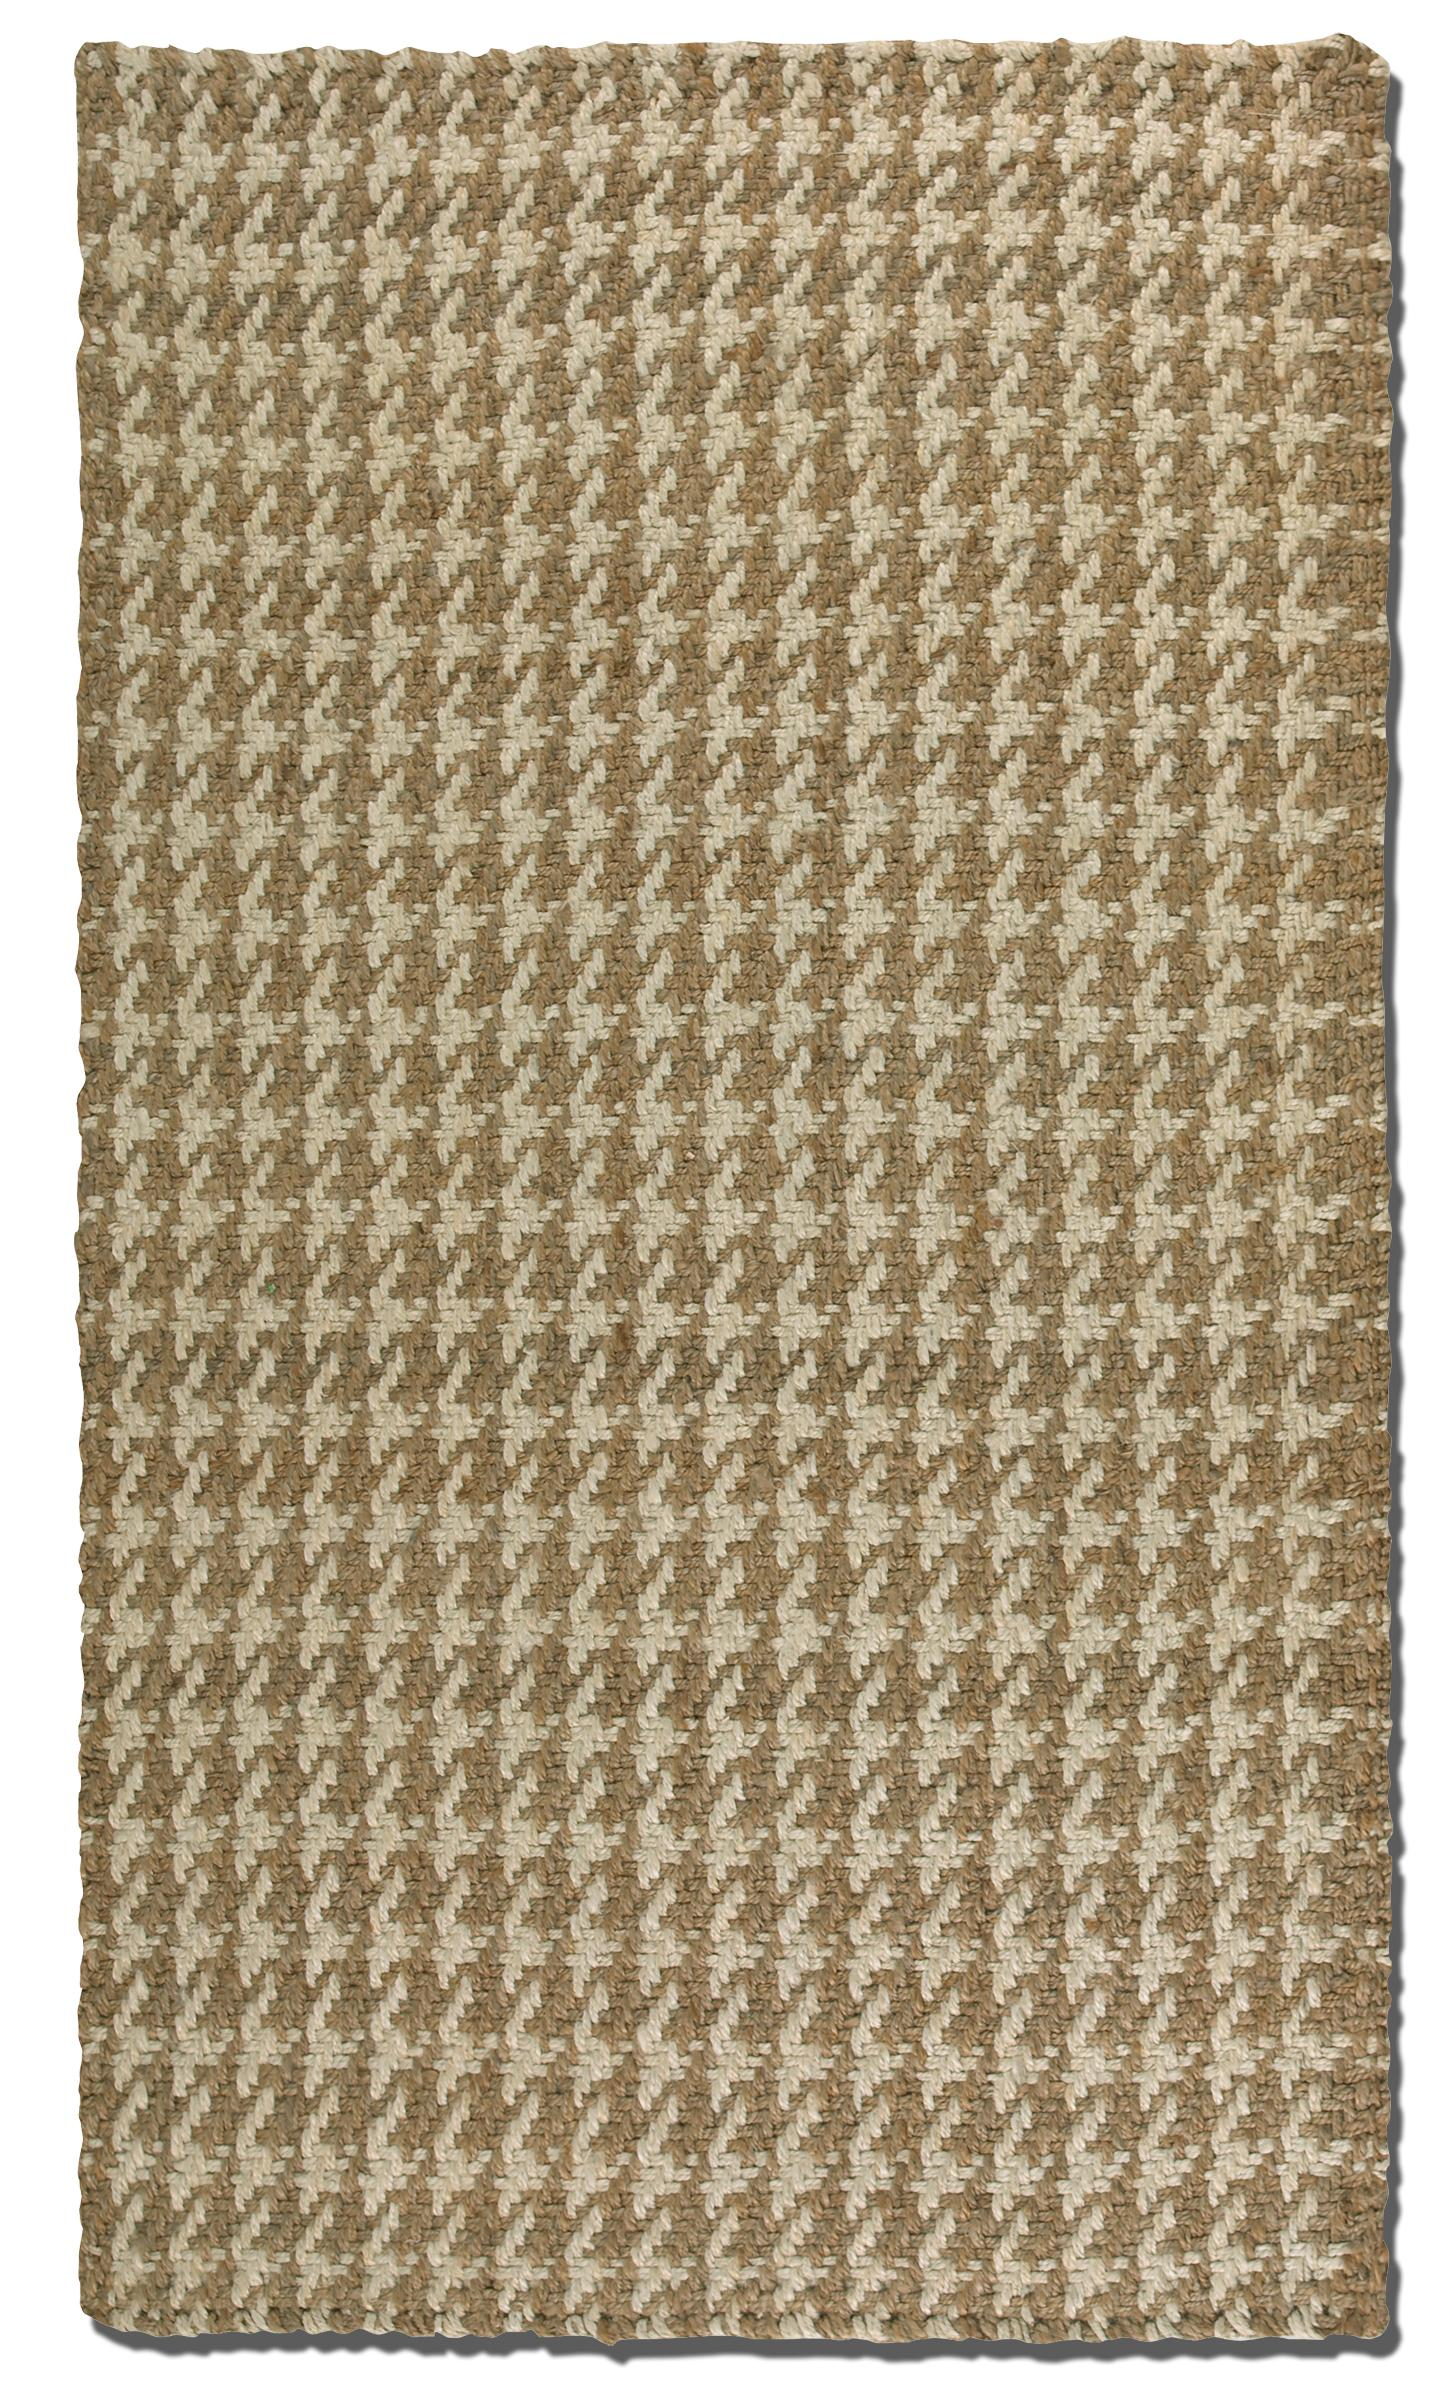 Uttermost Rugs Bengal 9 X 12  - Item Number: 71035-9